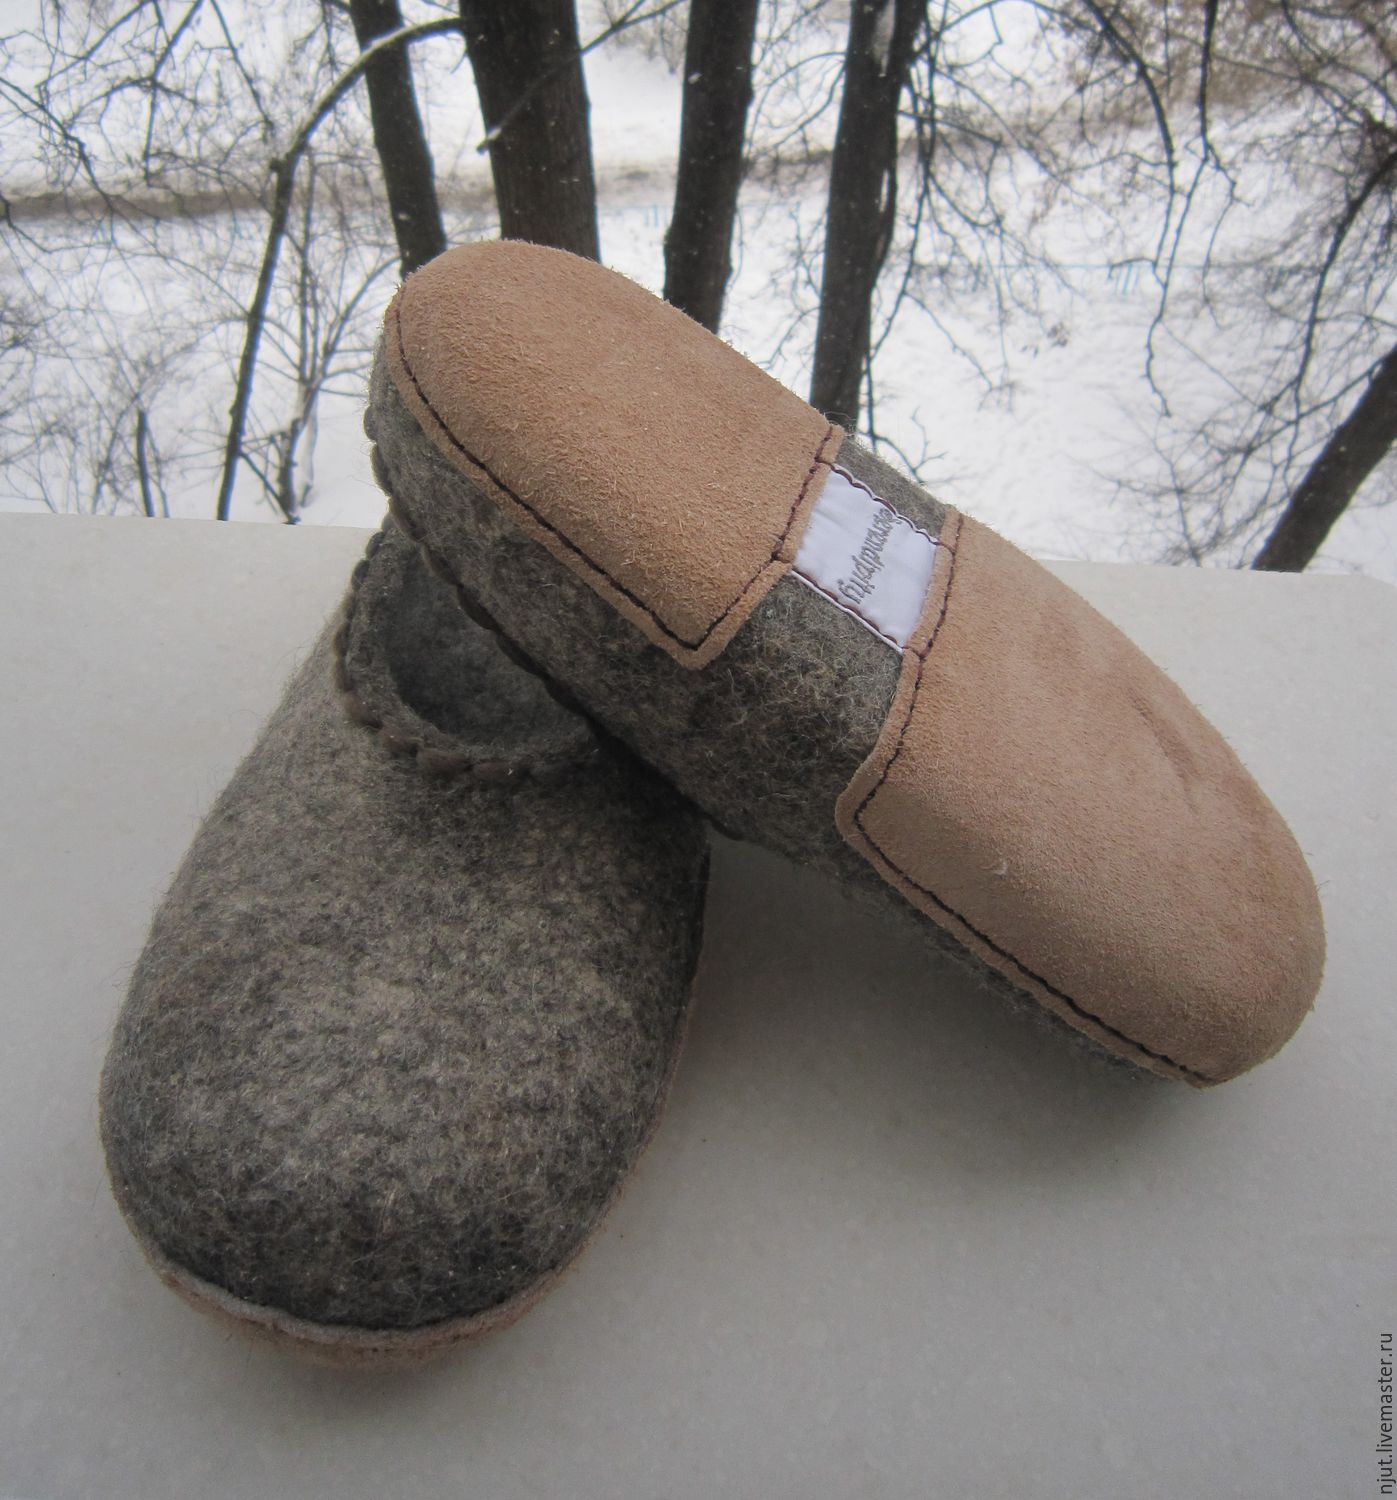 Felted Slippers, size 38